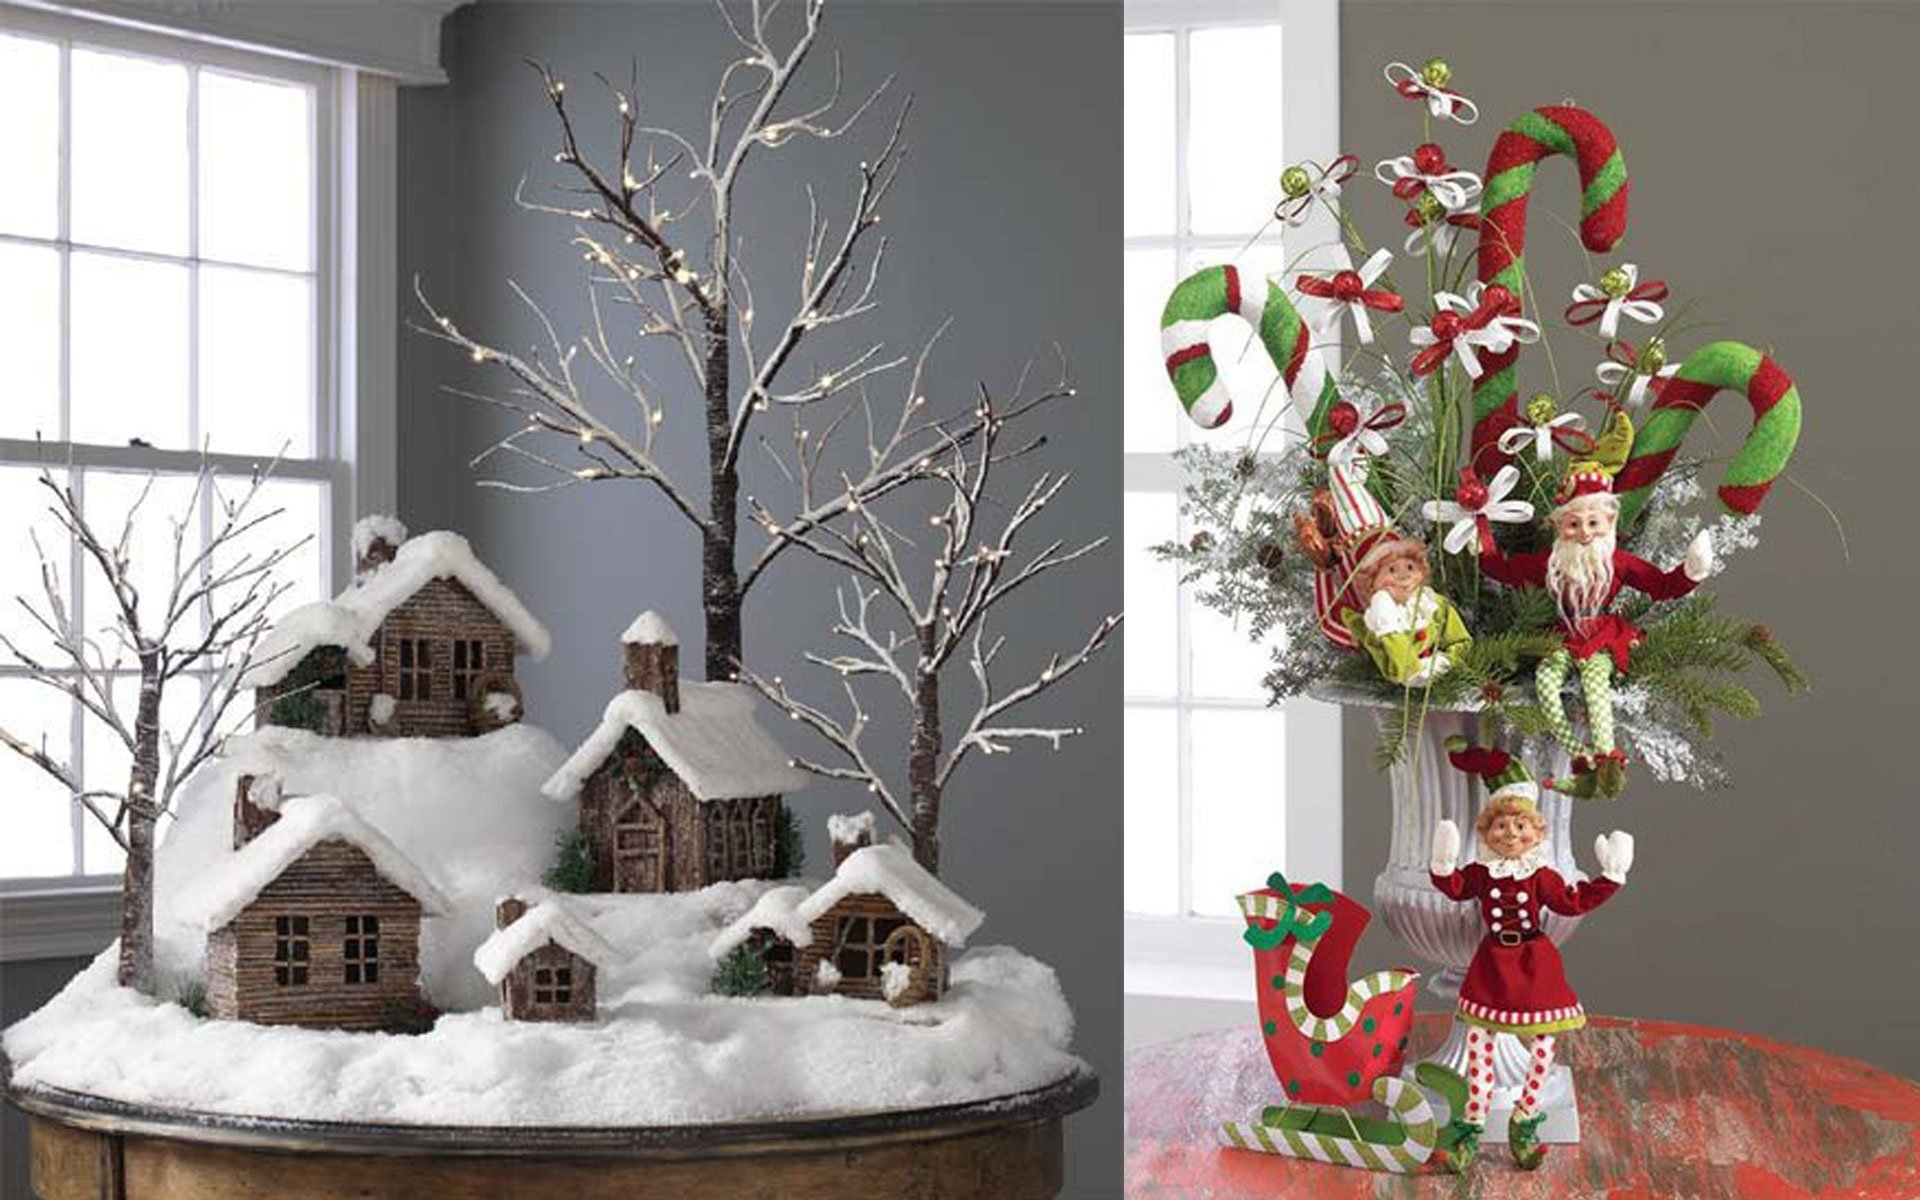 10 Cute Christmas Decorations Ideas To Make christmas tree decorations decor dma homes 30400 1 2021